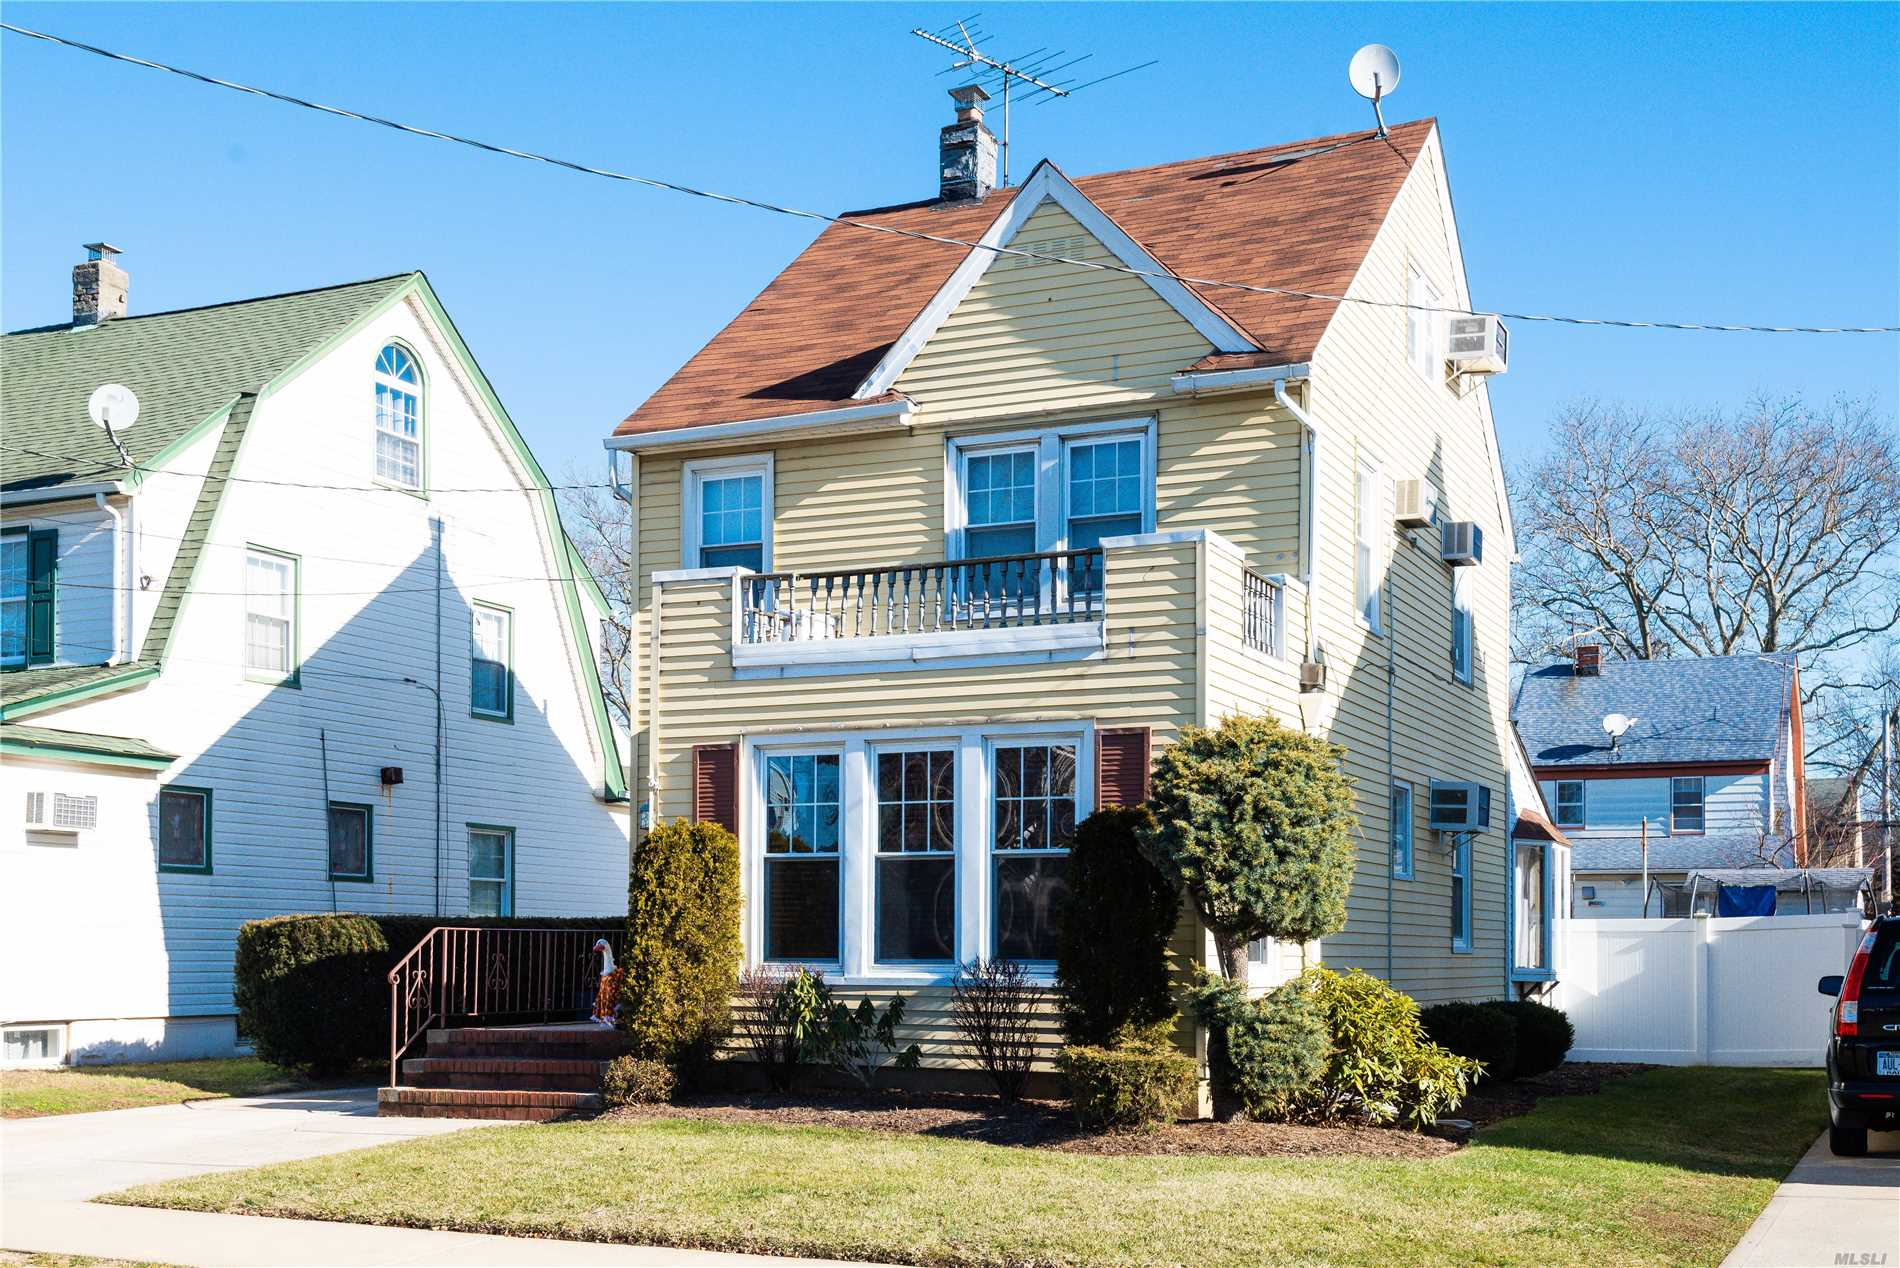 Charming Colonial With Three Bedrooms, 2 Baths. Beautiful Backyard Patio For Entertaining. Gorgeous Details Found Inside With Stained Glass Windows, Wood Inlays, And New Carpet. Tons Of Attic Storage. Close To Shopping, Lirr, Hospitals, And More.